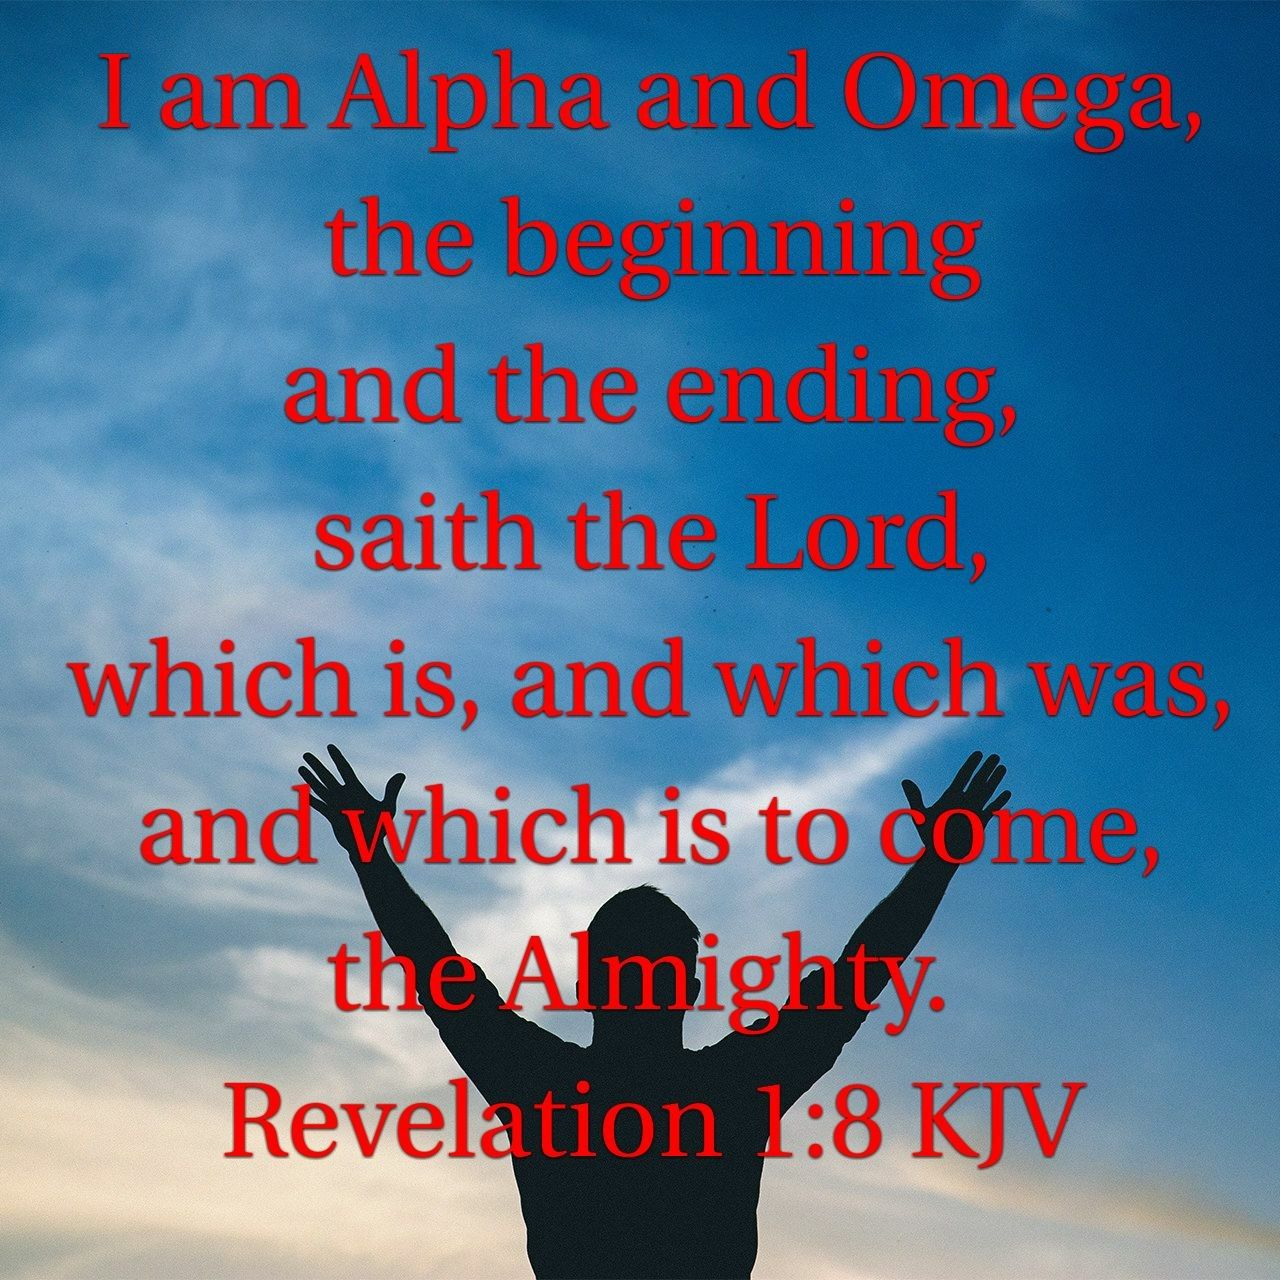 Revelation 1 8 Kjv Trust God Abba Father Son Of God